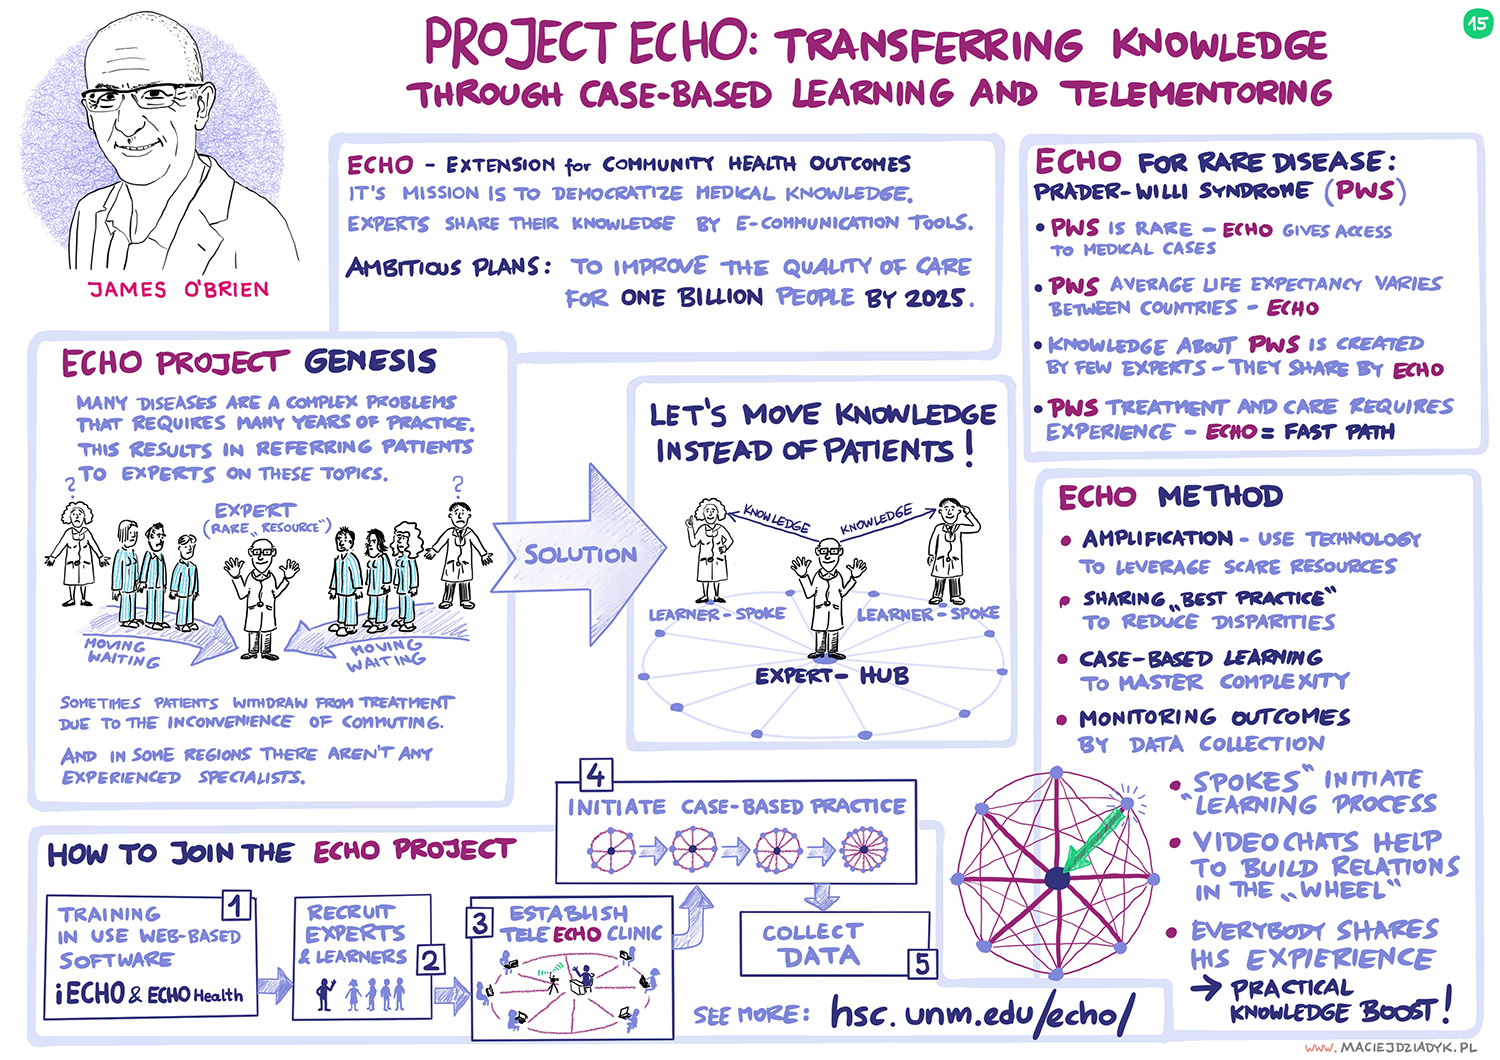 Project ECHO: transferring knowledge through case-based learning and telementoring. James O'Brien